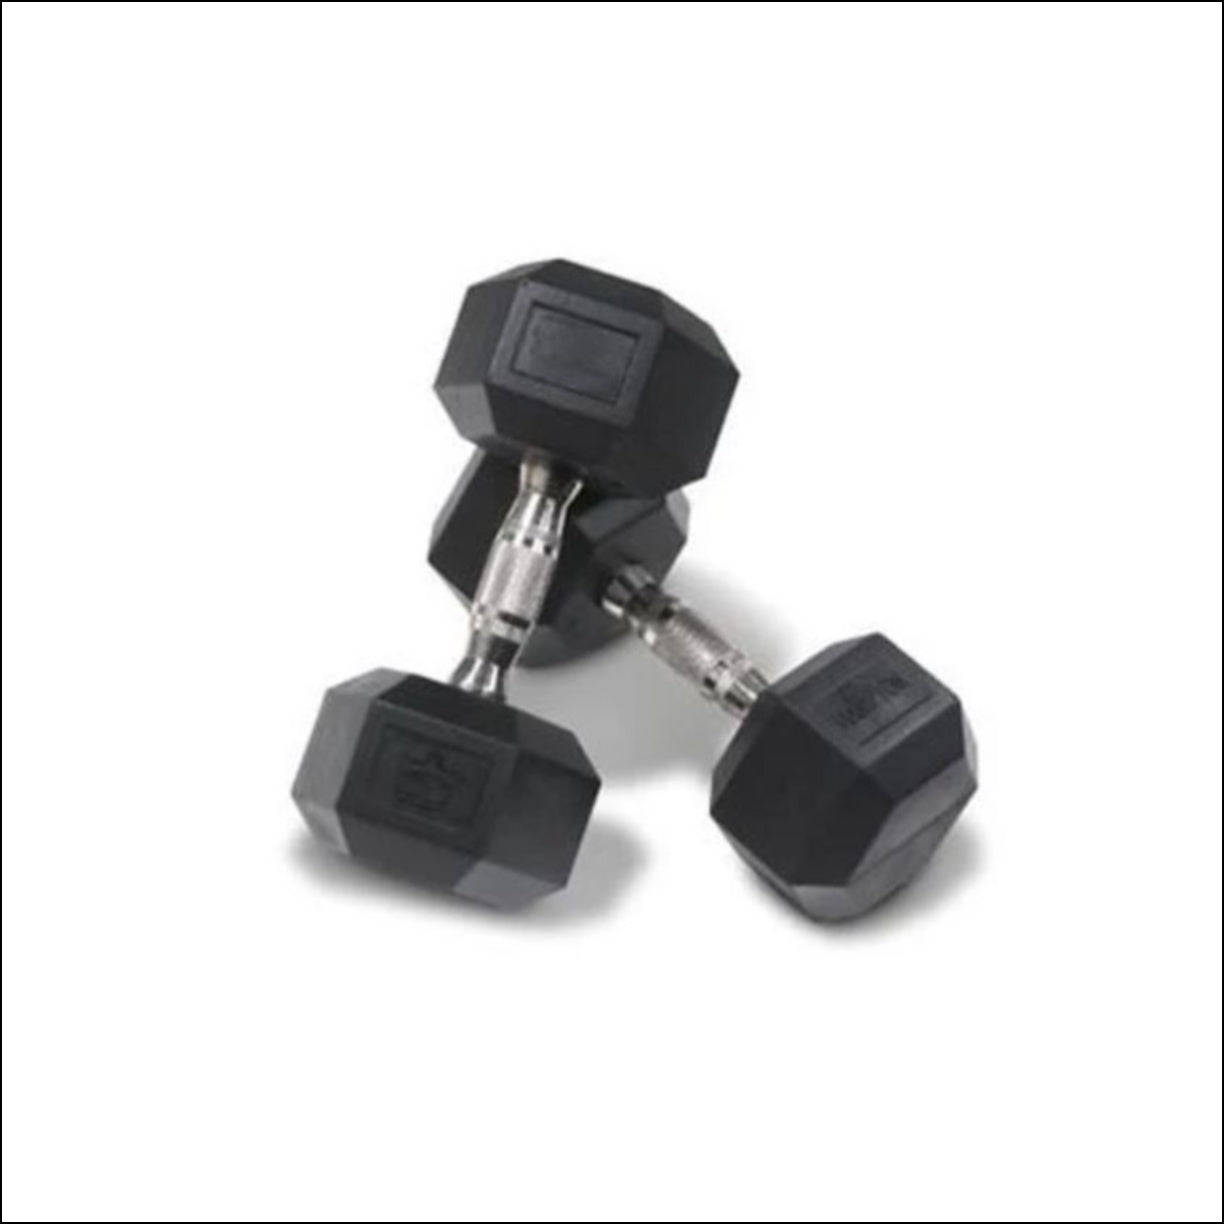 PAIR OF 32.5-KG RUBBER HEX DUMBBELLS  Muscle Motion Rubber coated hexagonal dumbbells with ergonomic handles are designed for increased comfort and improved durability. Rubber coating reduces noise improves life cycle of the product  (other finishes such as chrome and cast iron are subject to chipping and rust). Rubber coated dumbbells are also kinder on floor surfaces. The hexagonal shaped ends are designed to prevent the dumbbell from rolling on the floor or dumbbell rack.